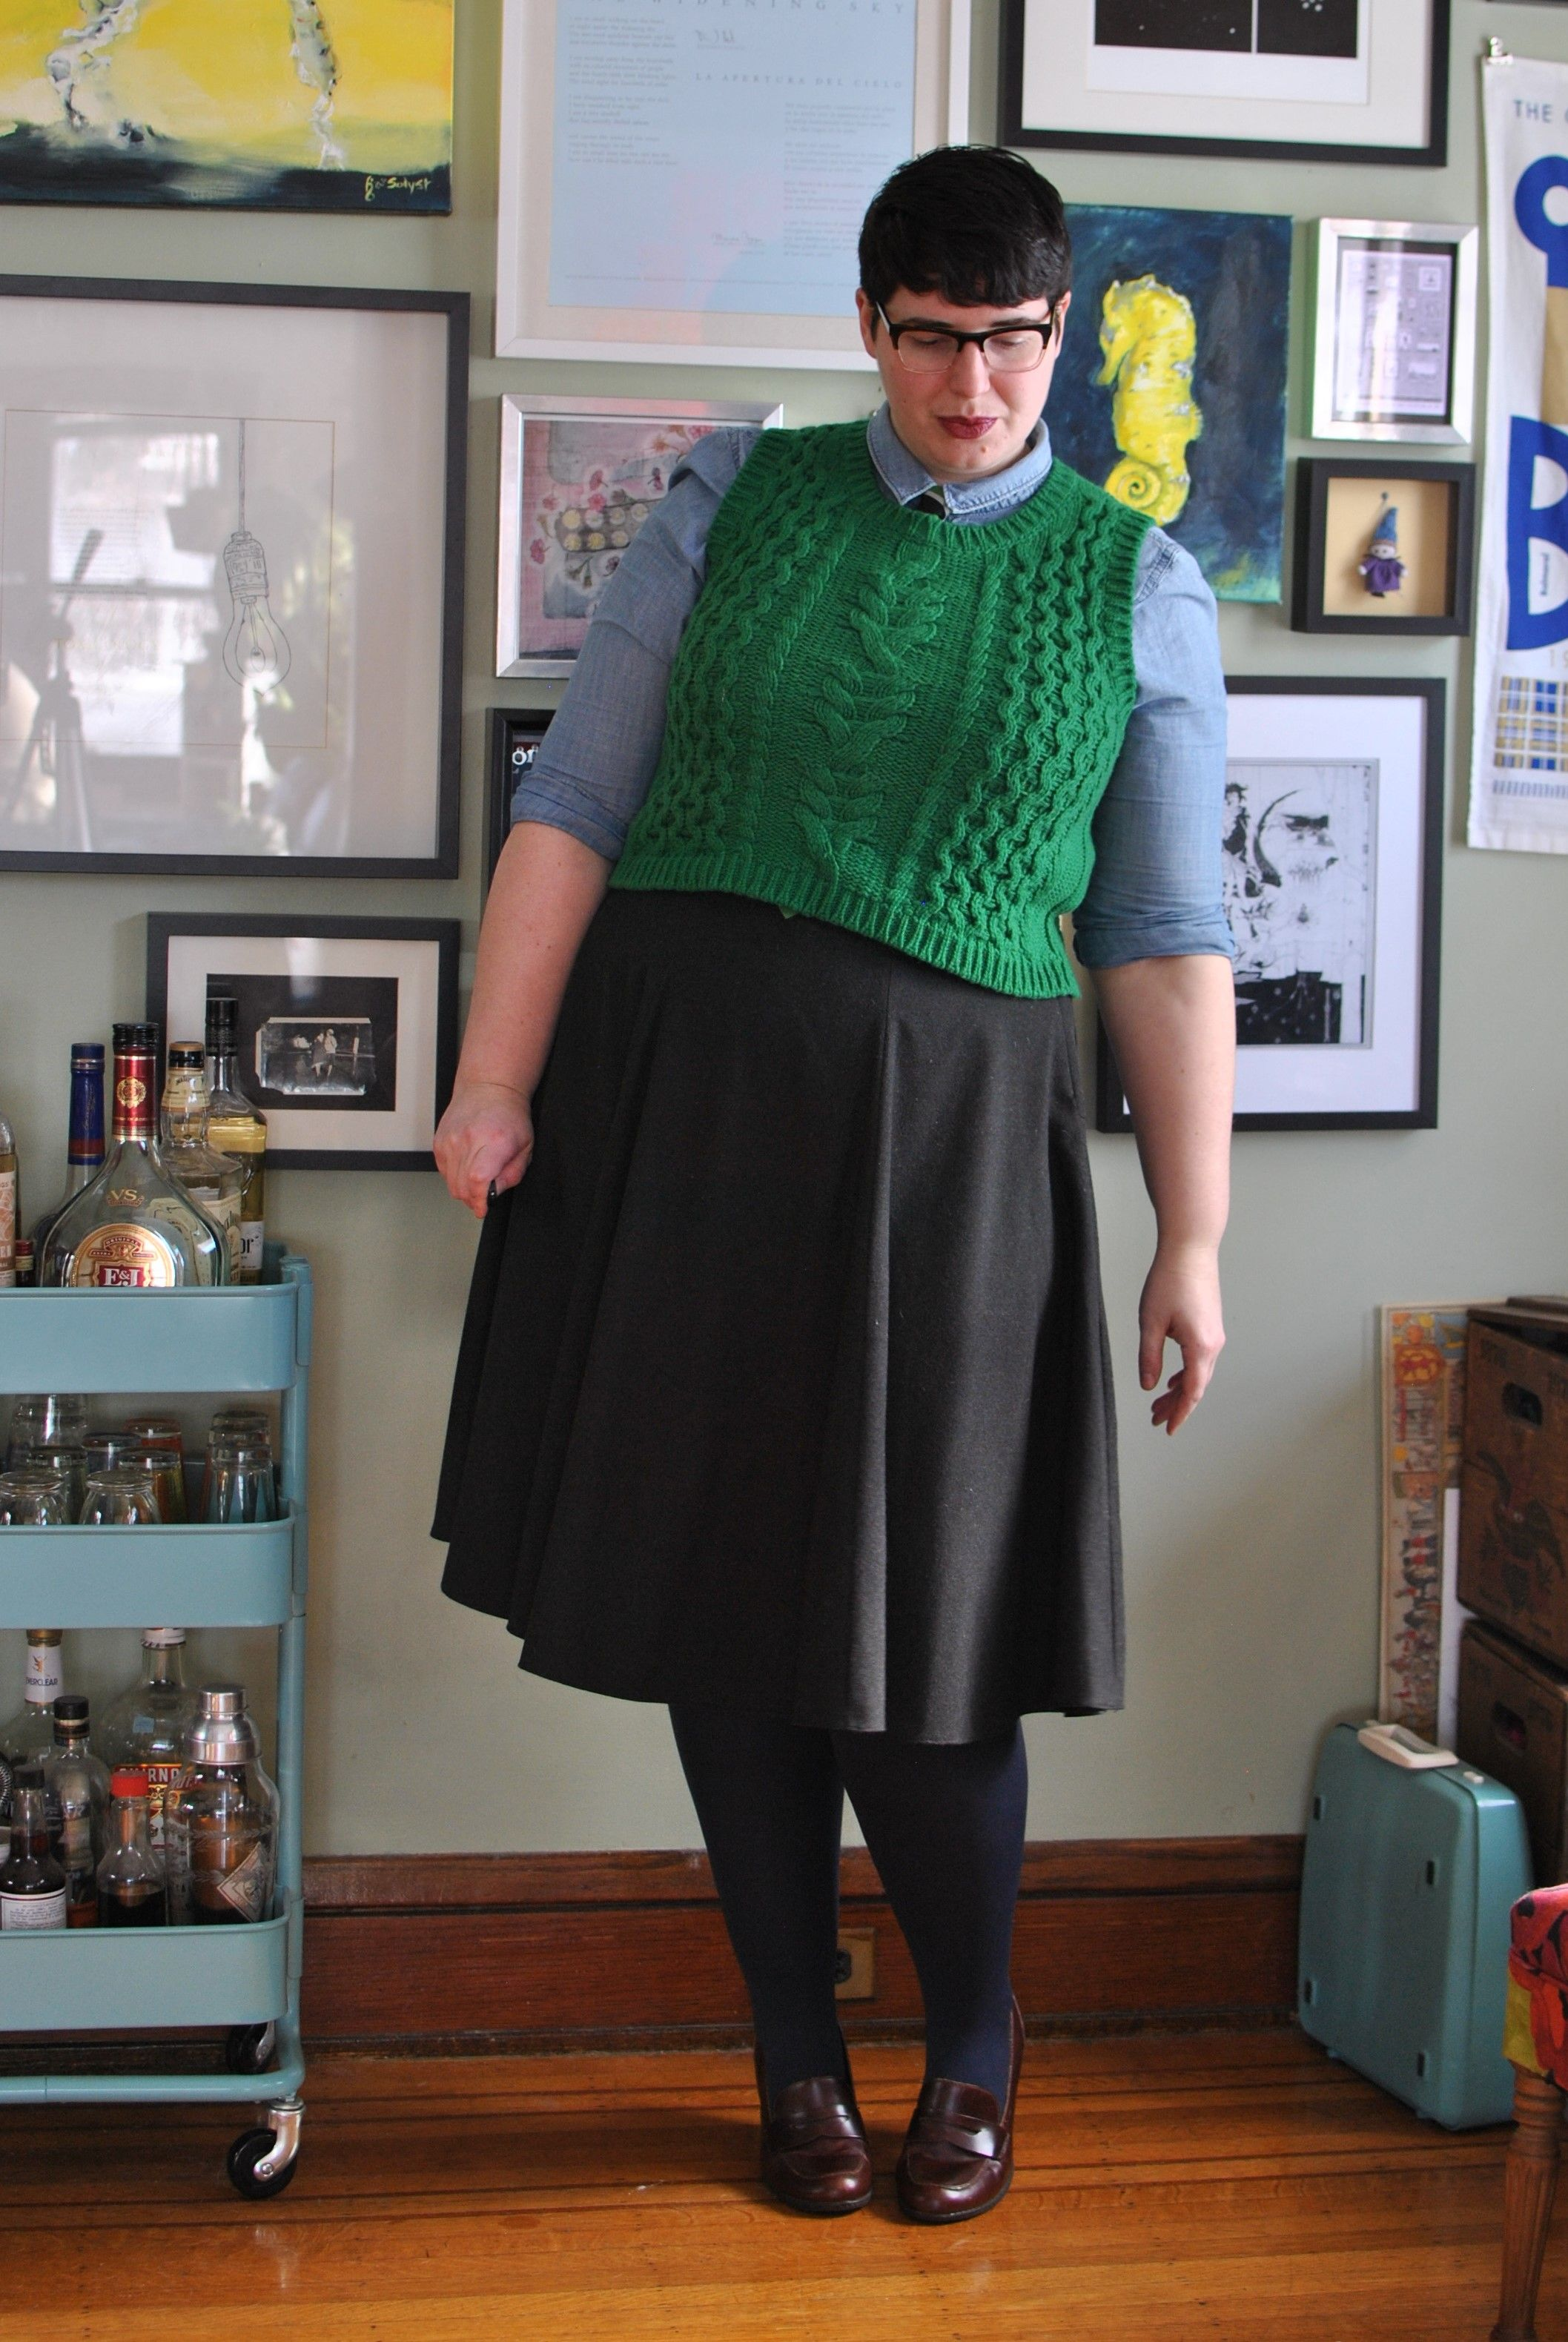 Plus size cuties with androgynous looks